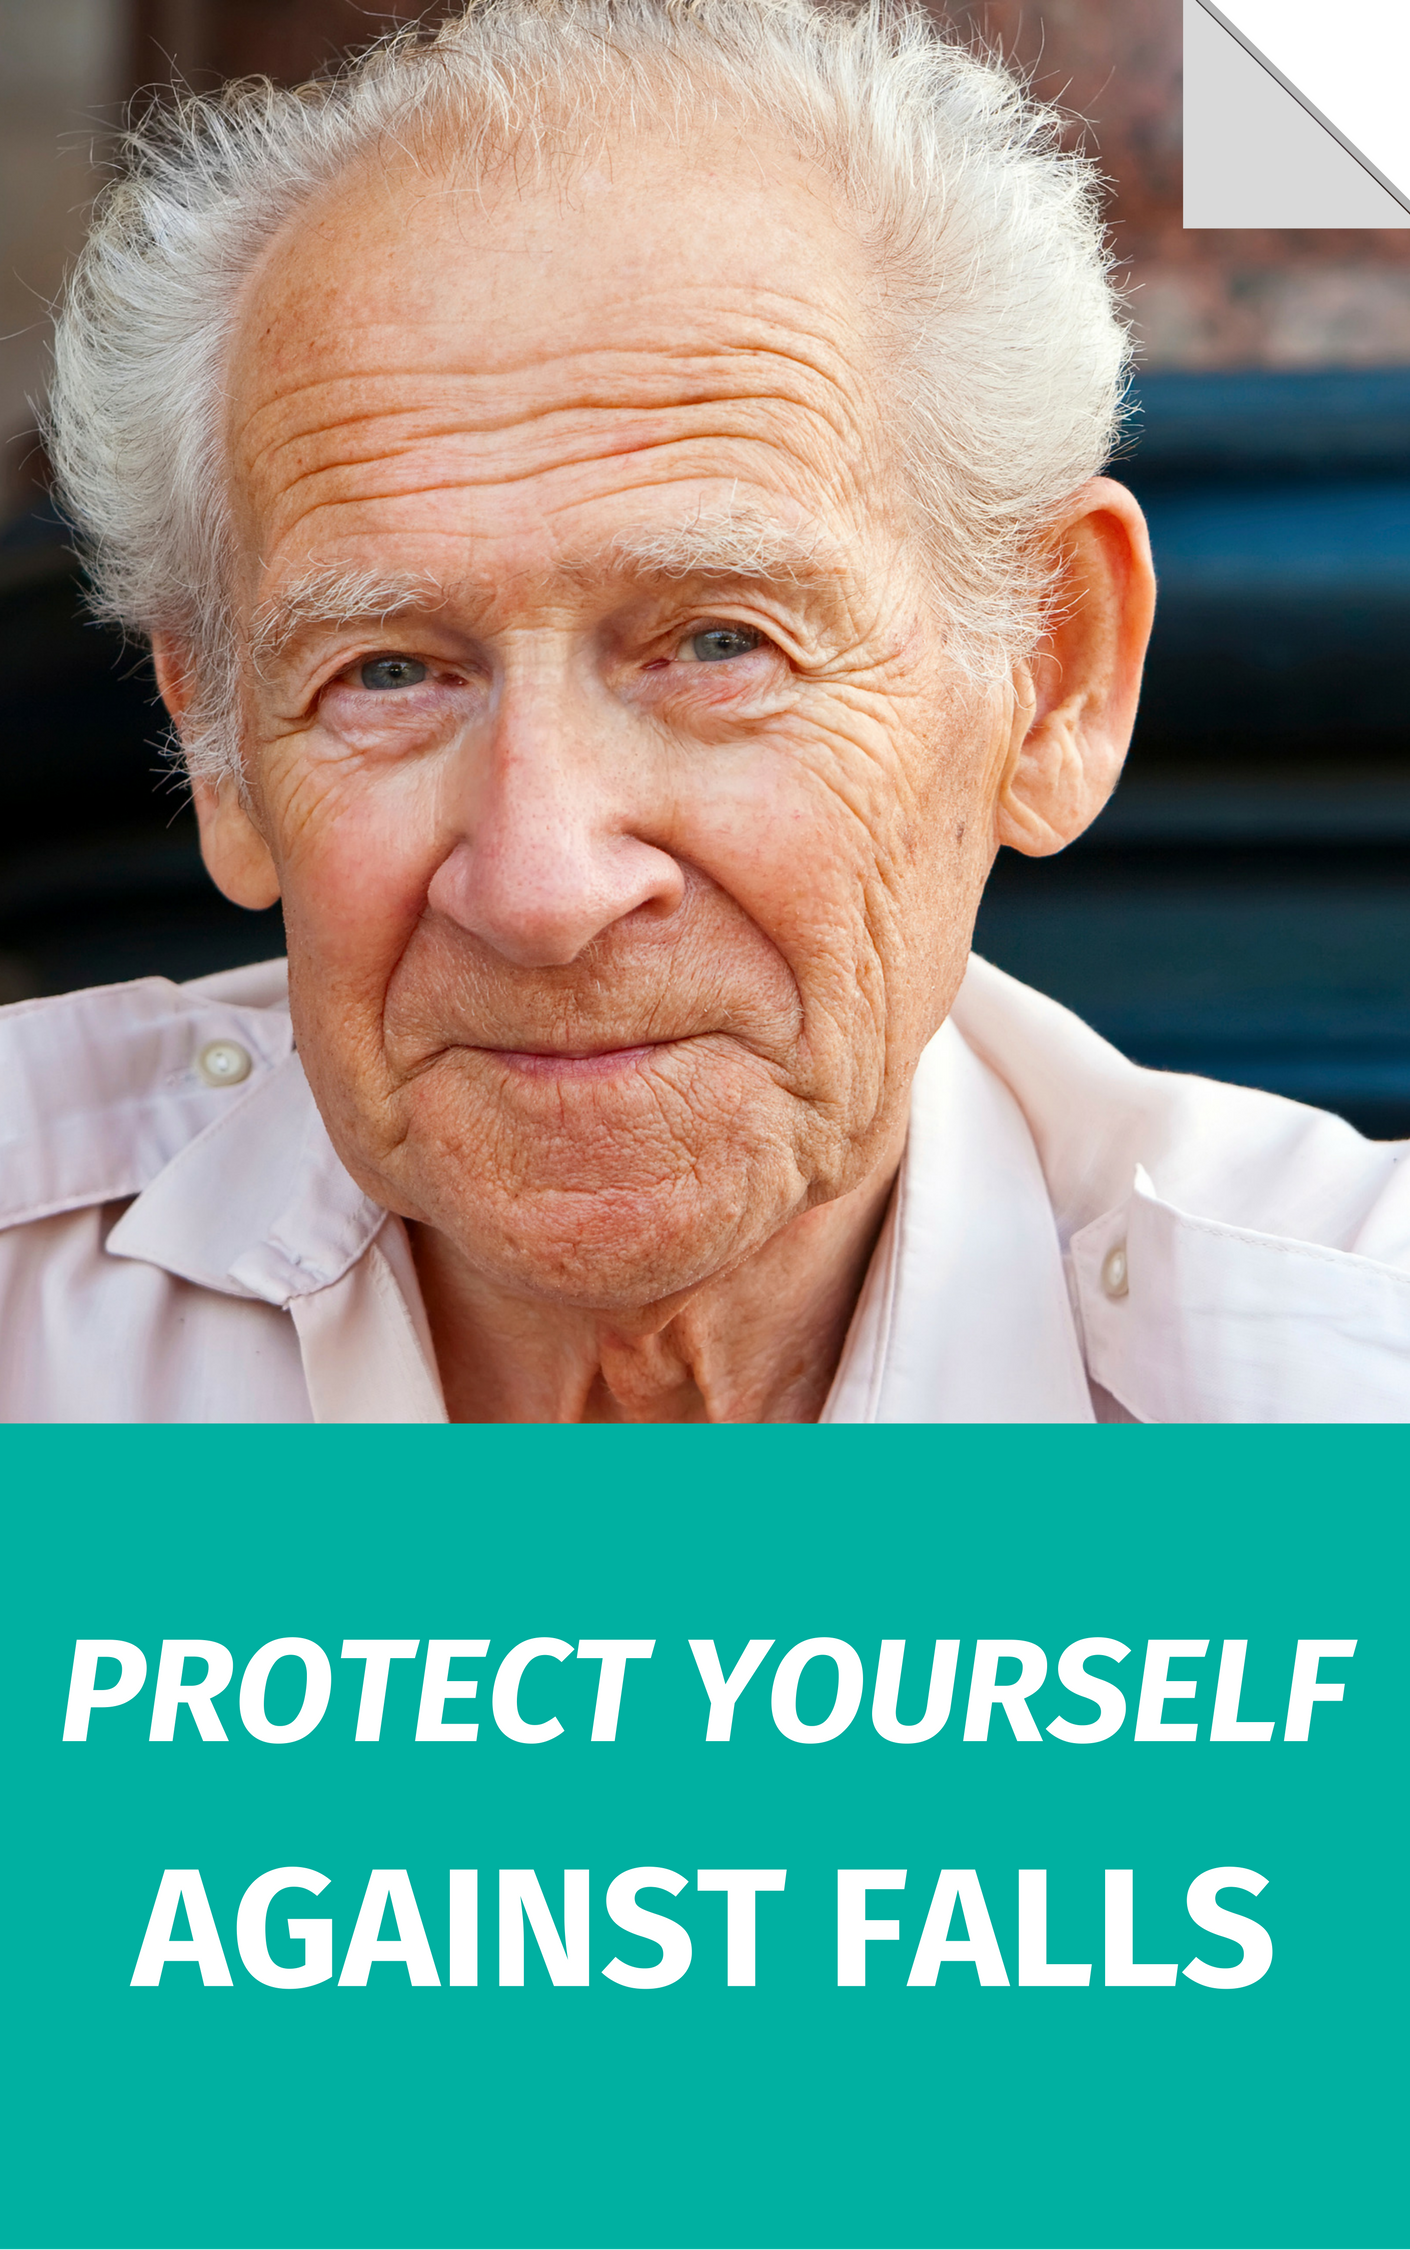 Protect Yourself Against Falls